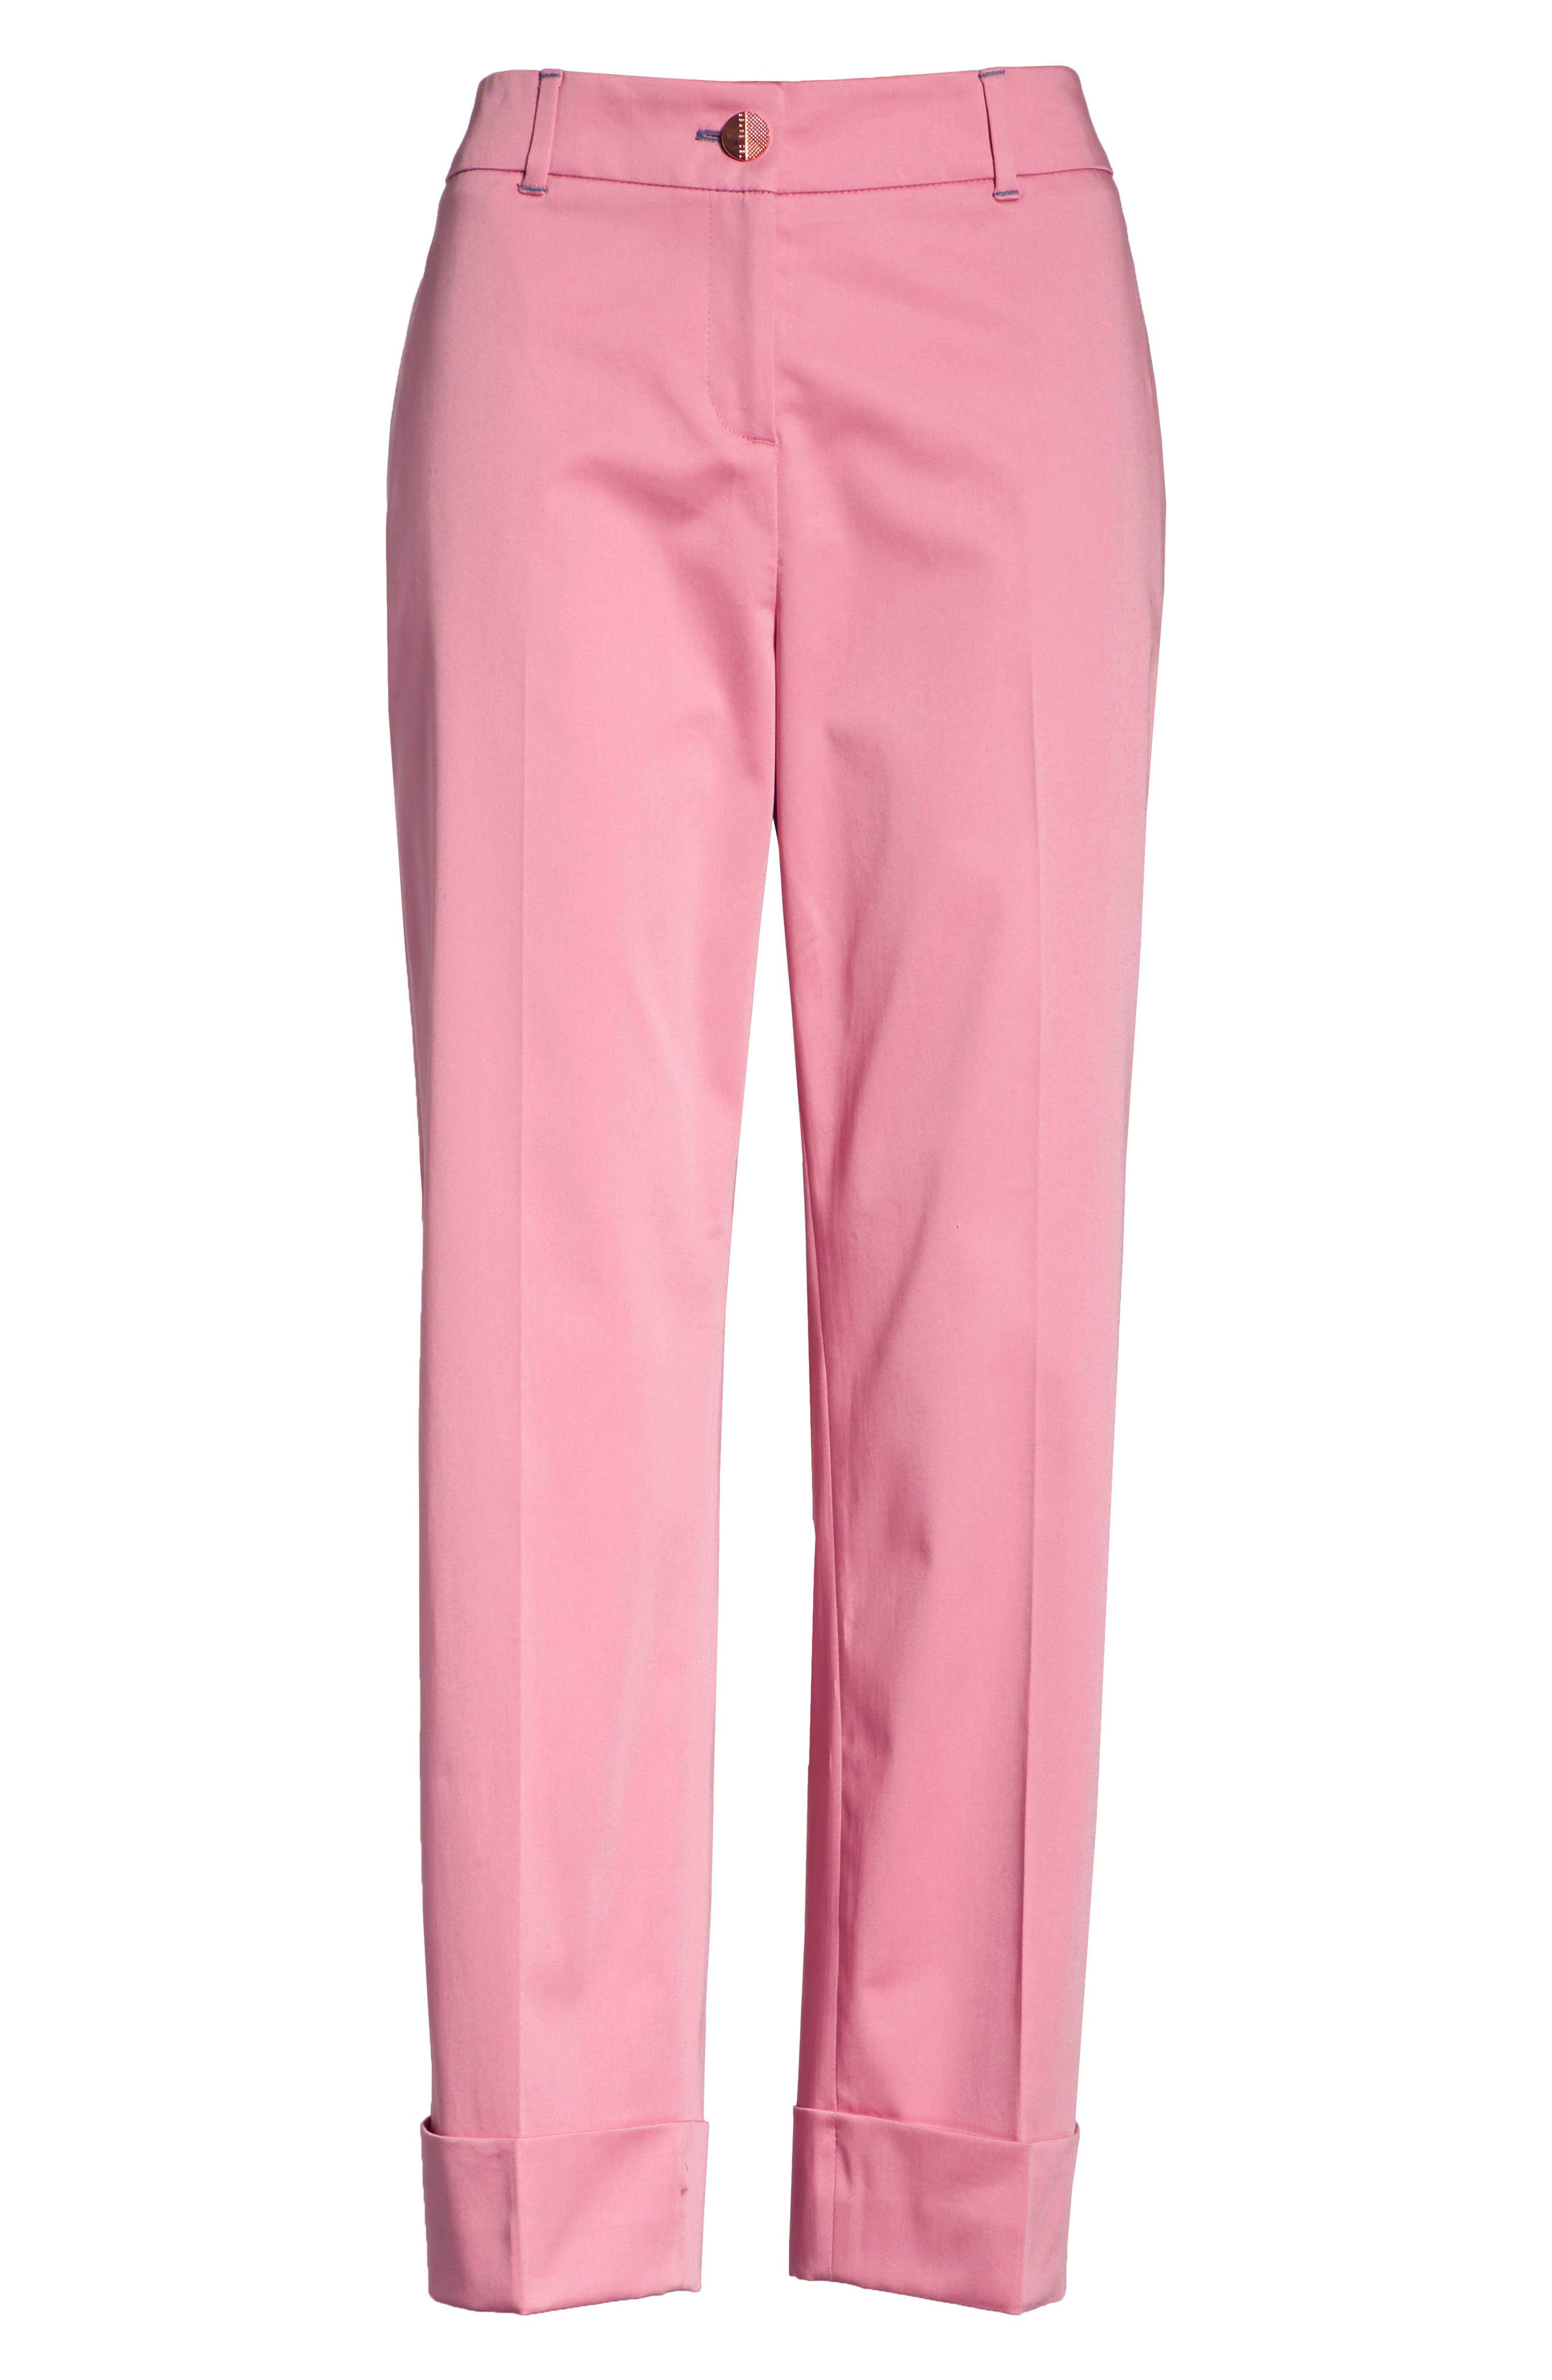 Saydii Deep Cuff Stretch Cotton Chino Pants,                             Alternate thumbnail 6, color,                             Dusky Pink